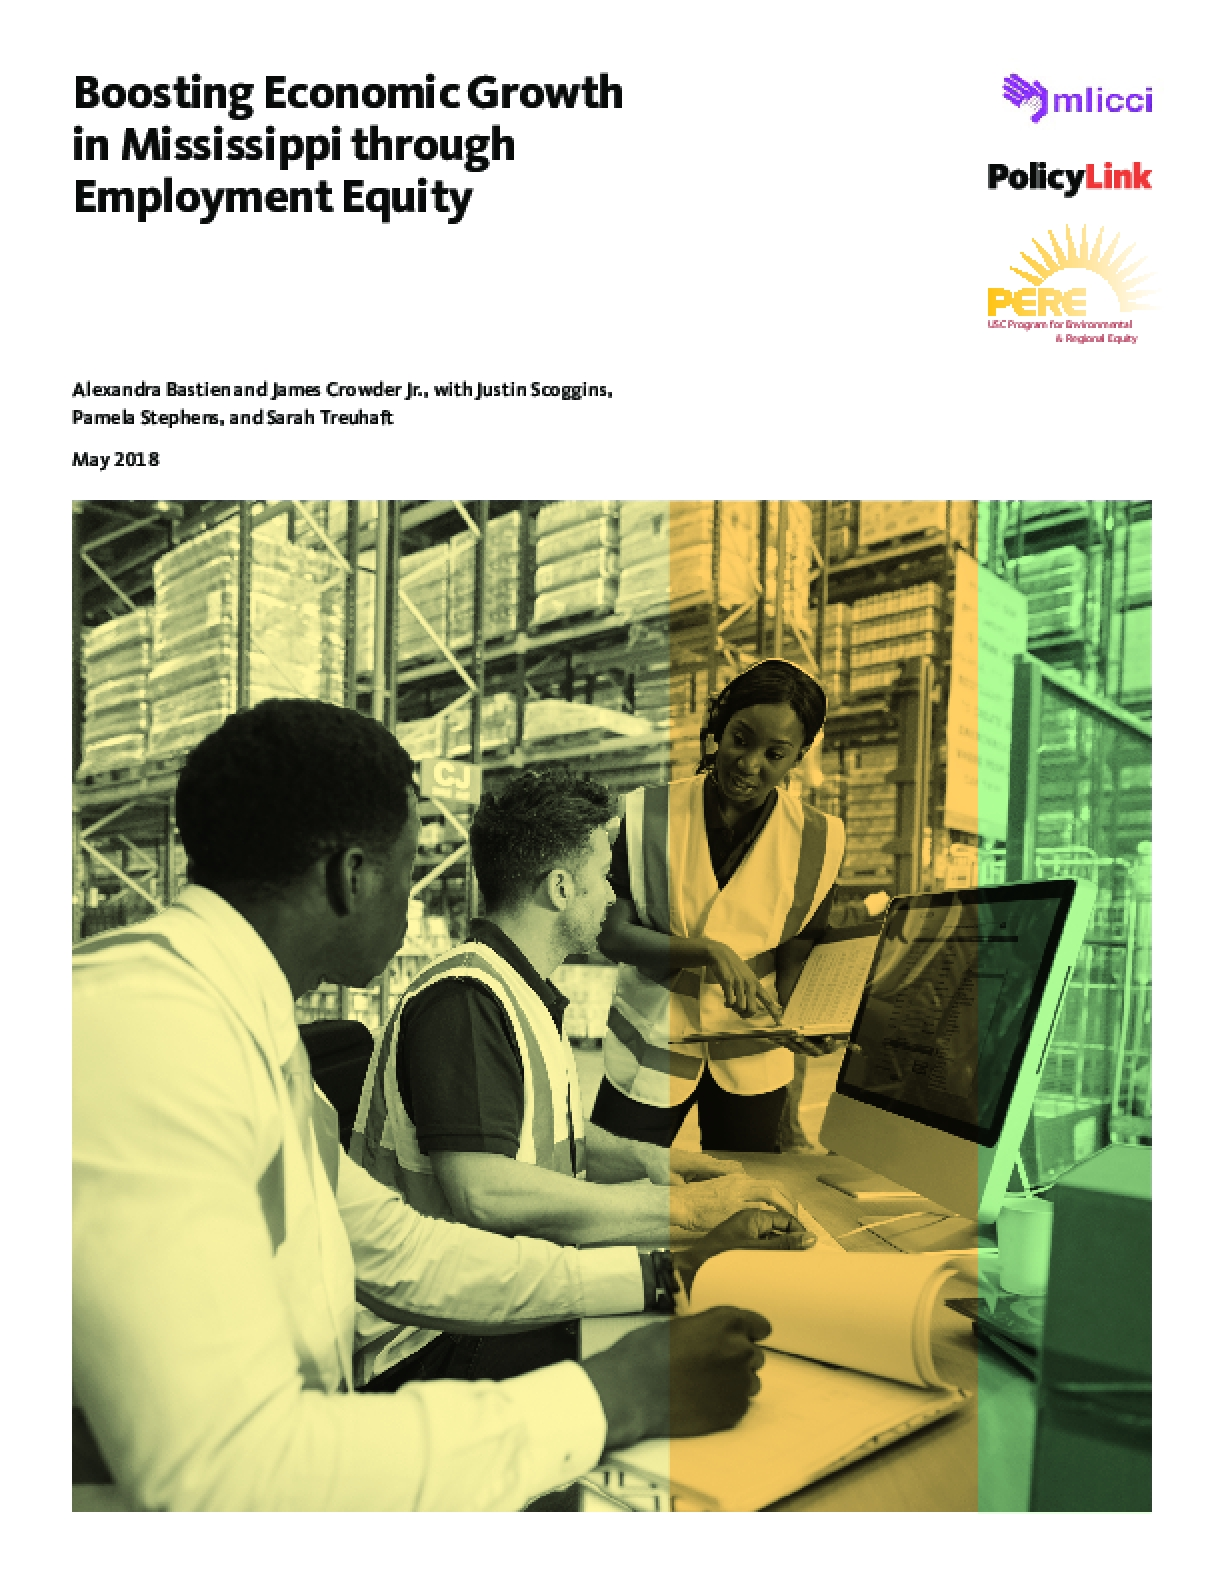 Boosting Economic Growth in Mississippi through Employment Equity